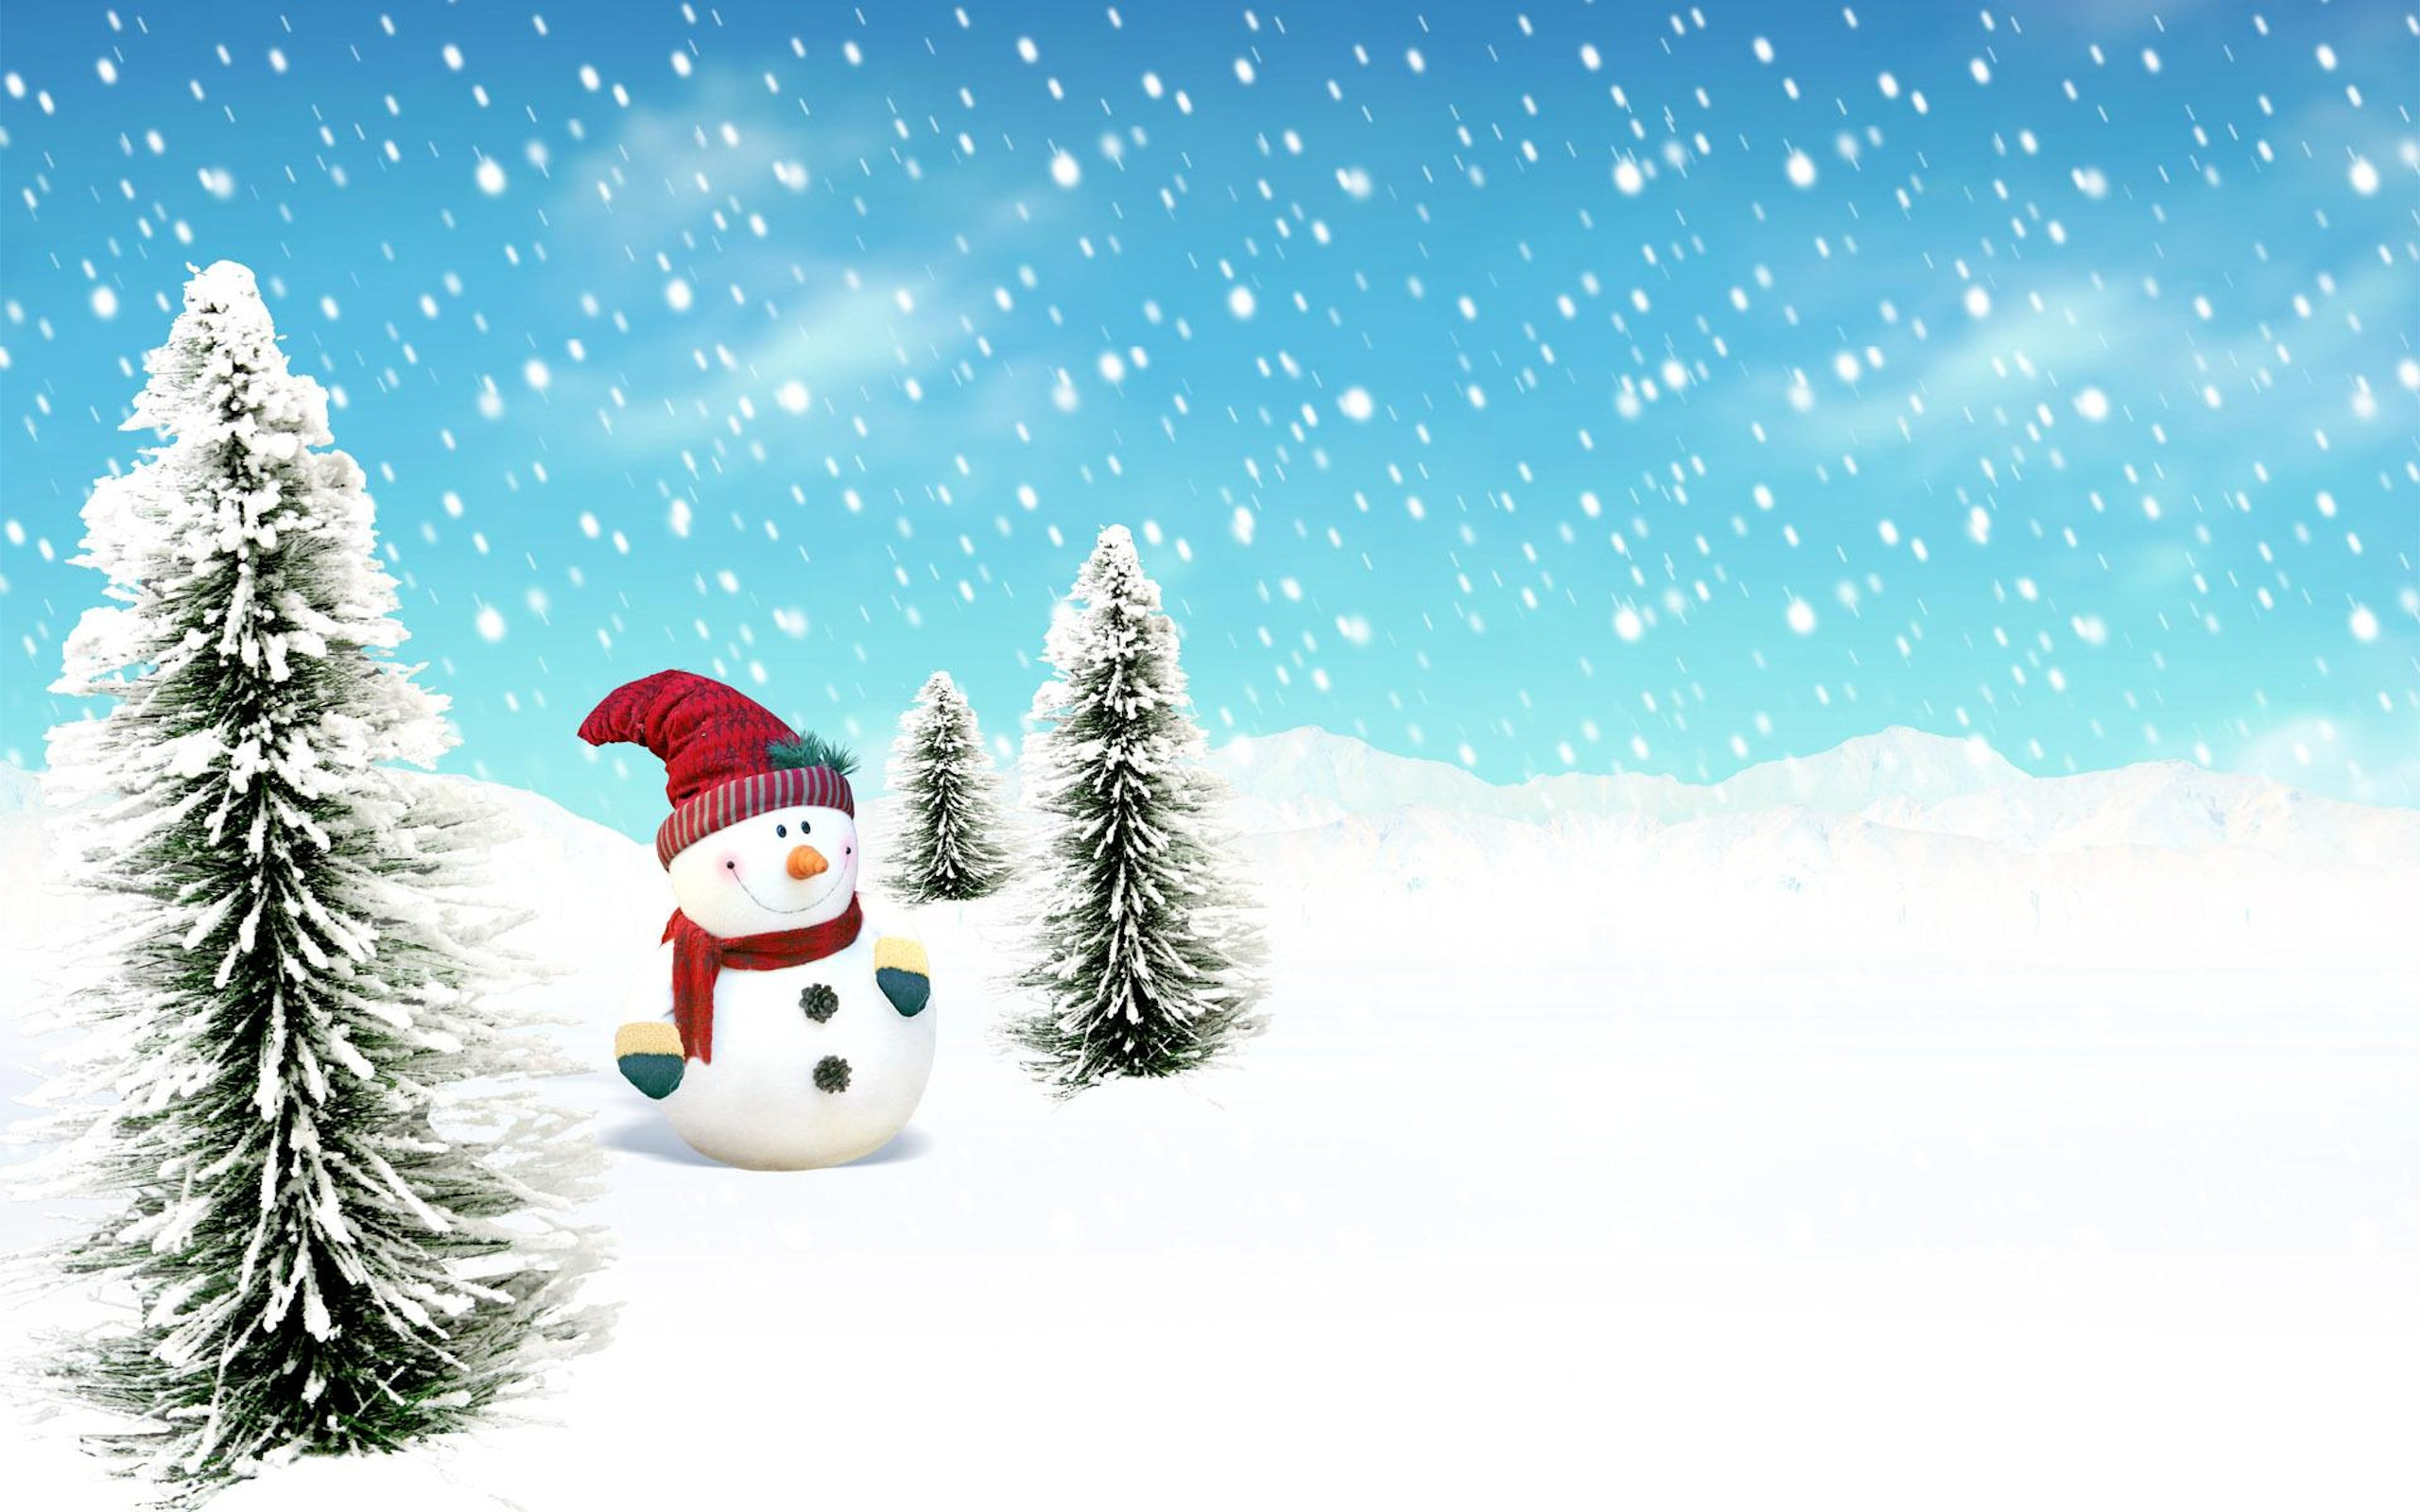 2560x1600 Free Christmas Vectors Images Download Free Christmas Vectors